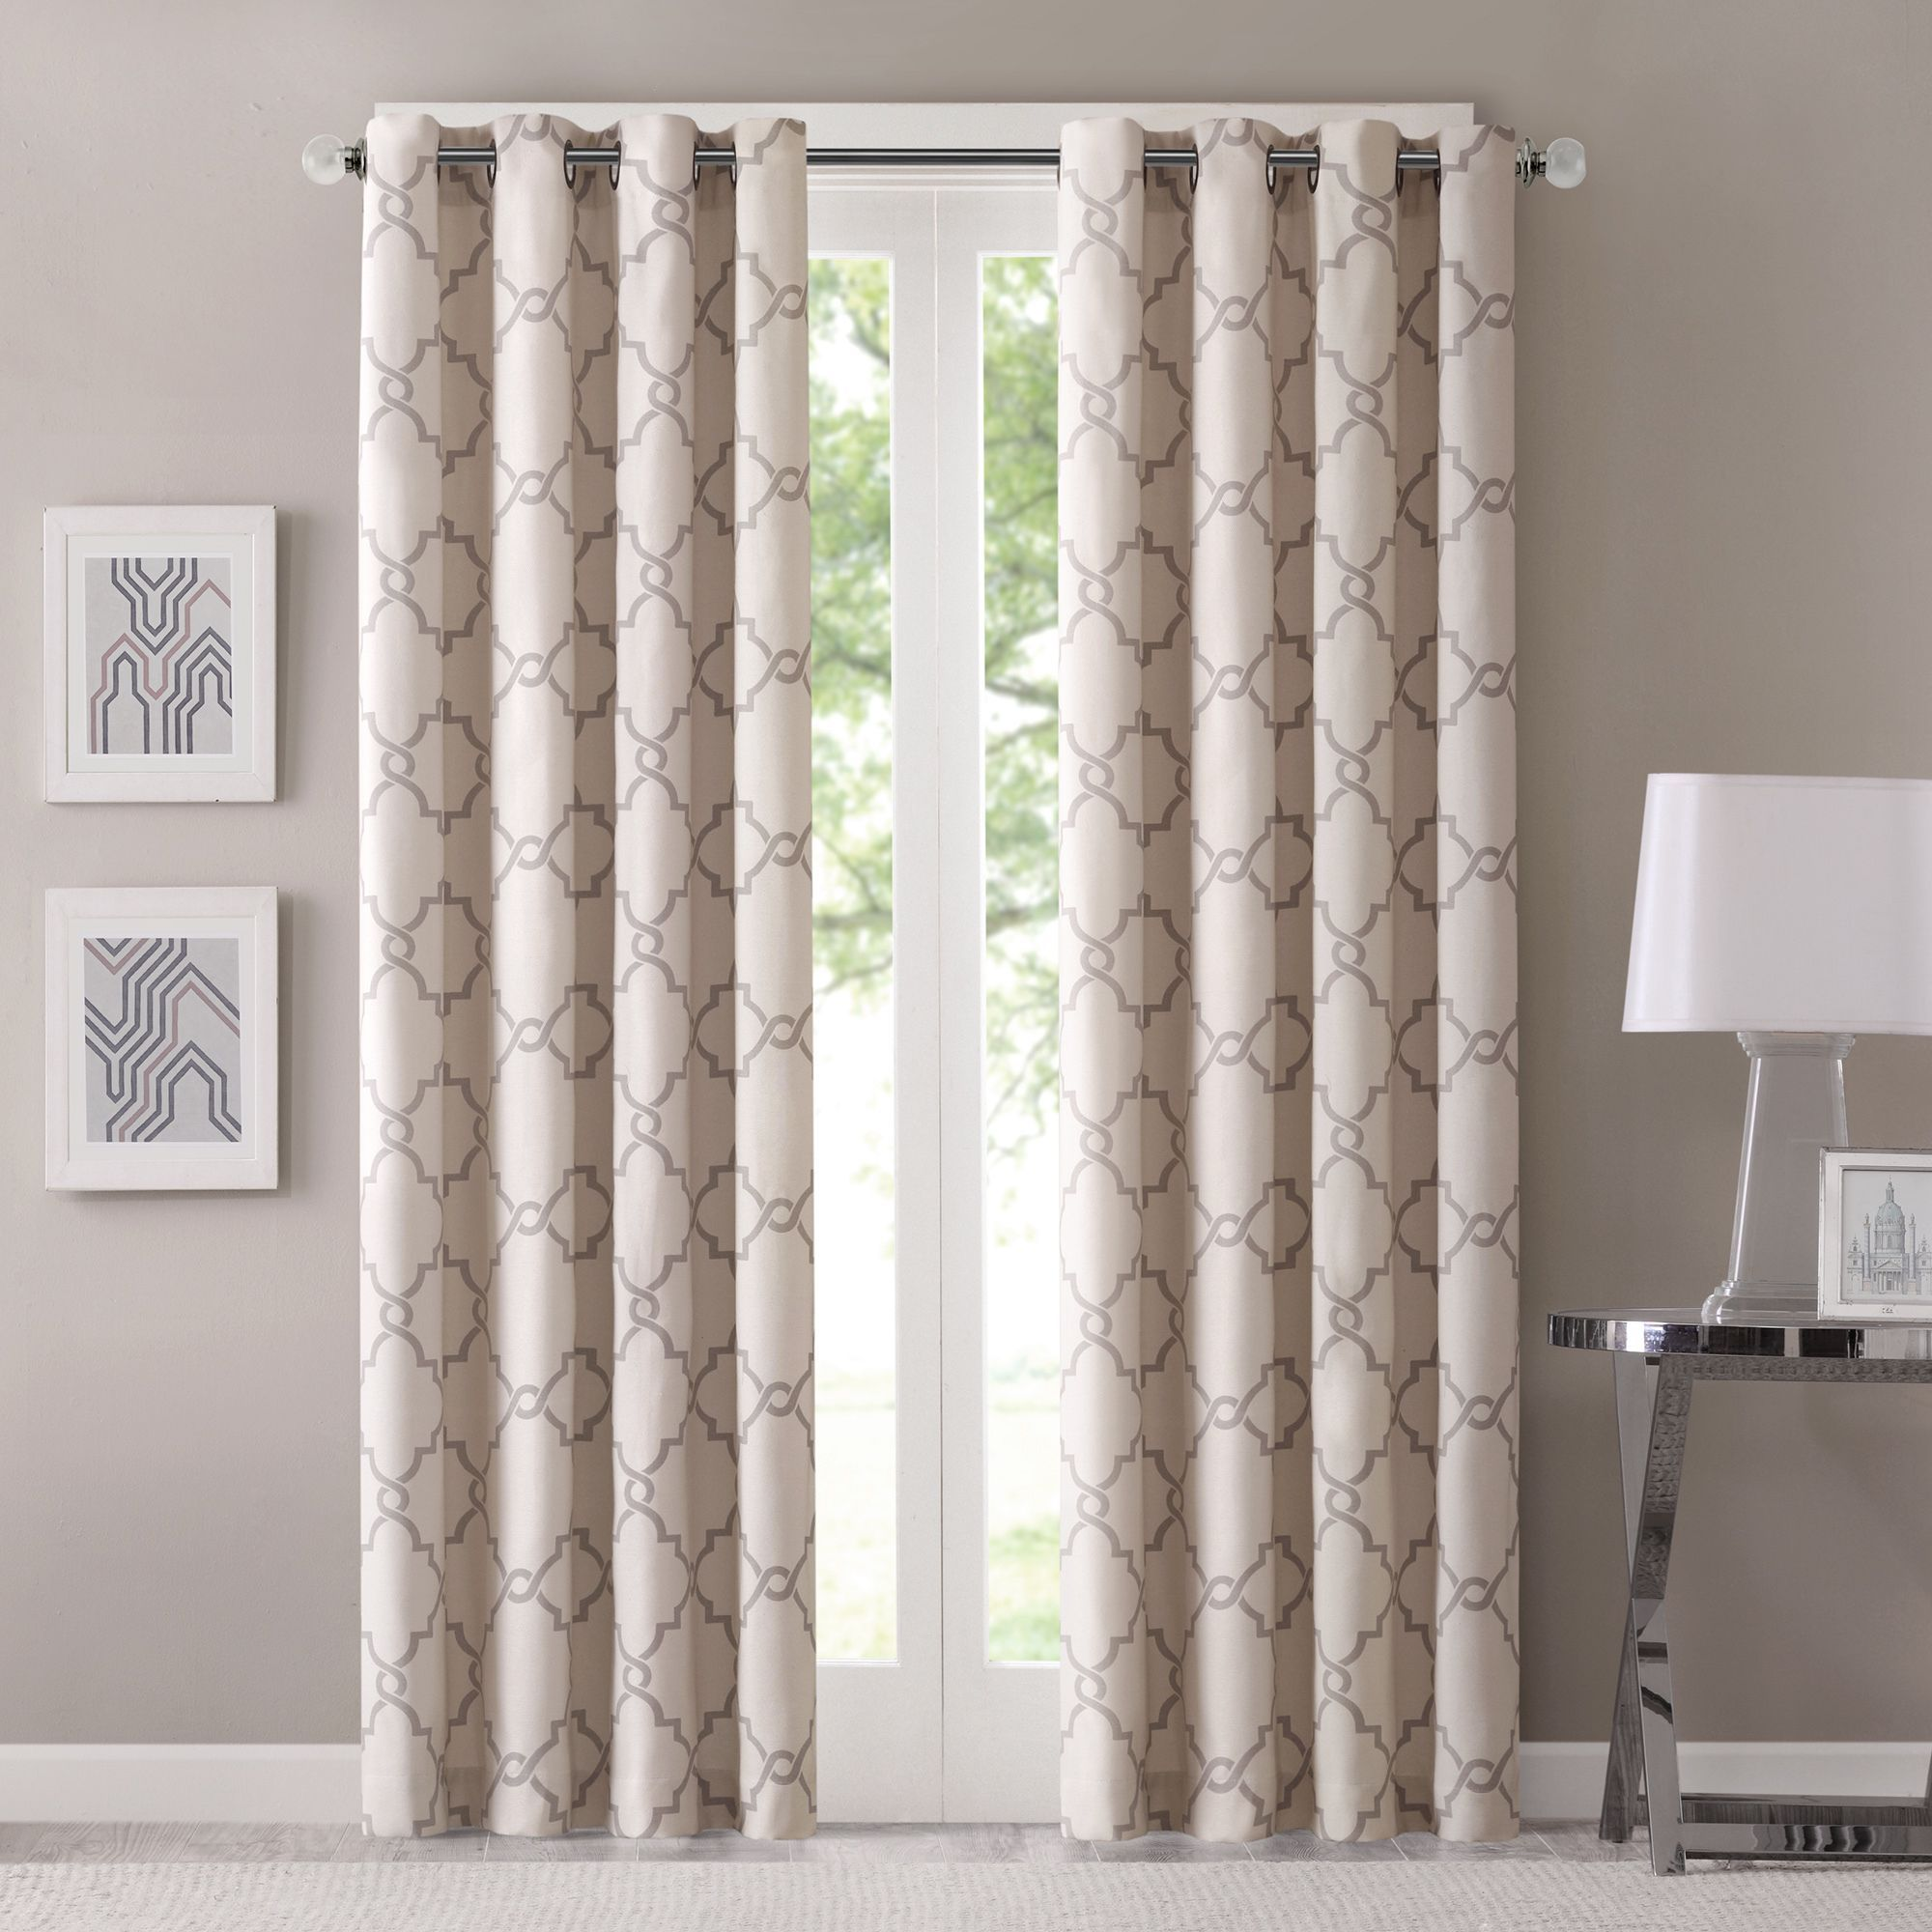 ideas curtains blackout for trend fresh and u blue royal styles curtain marvelous sxs uncategorized grommet pics